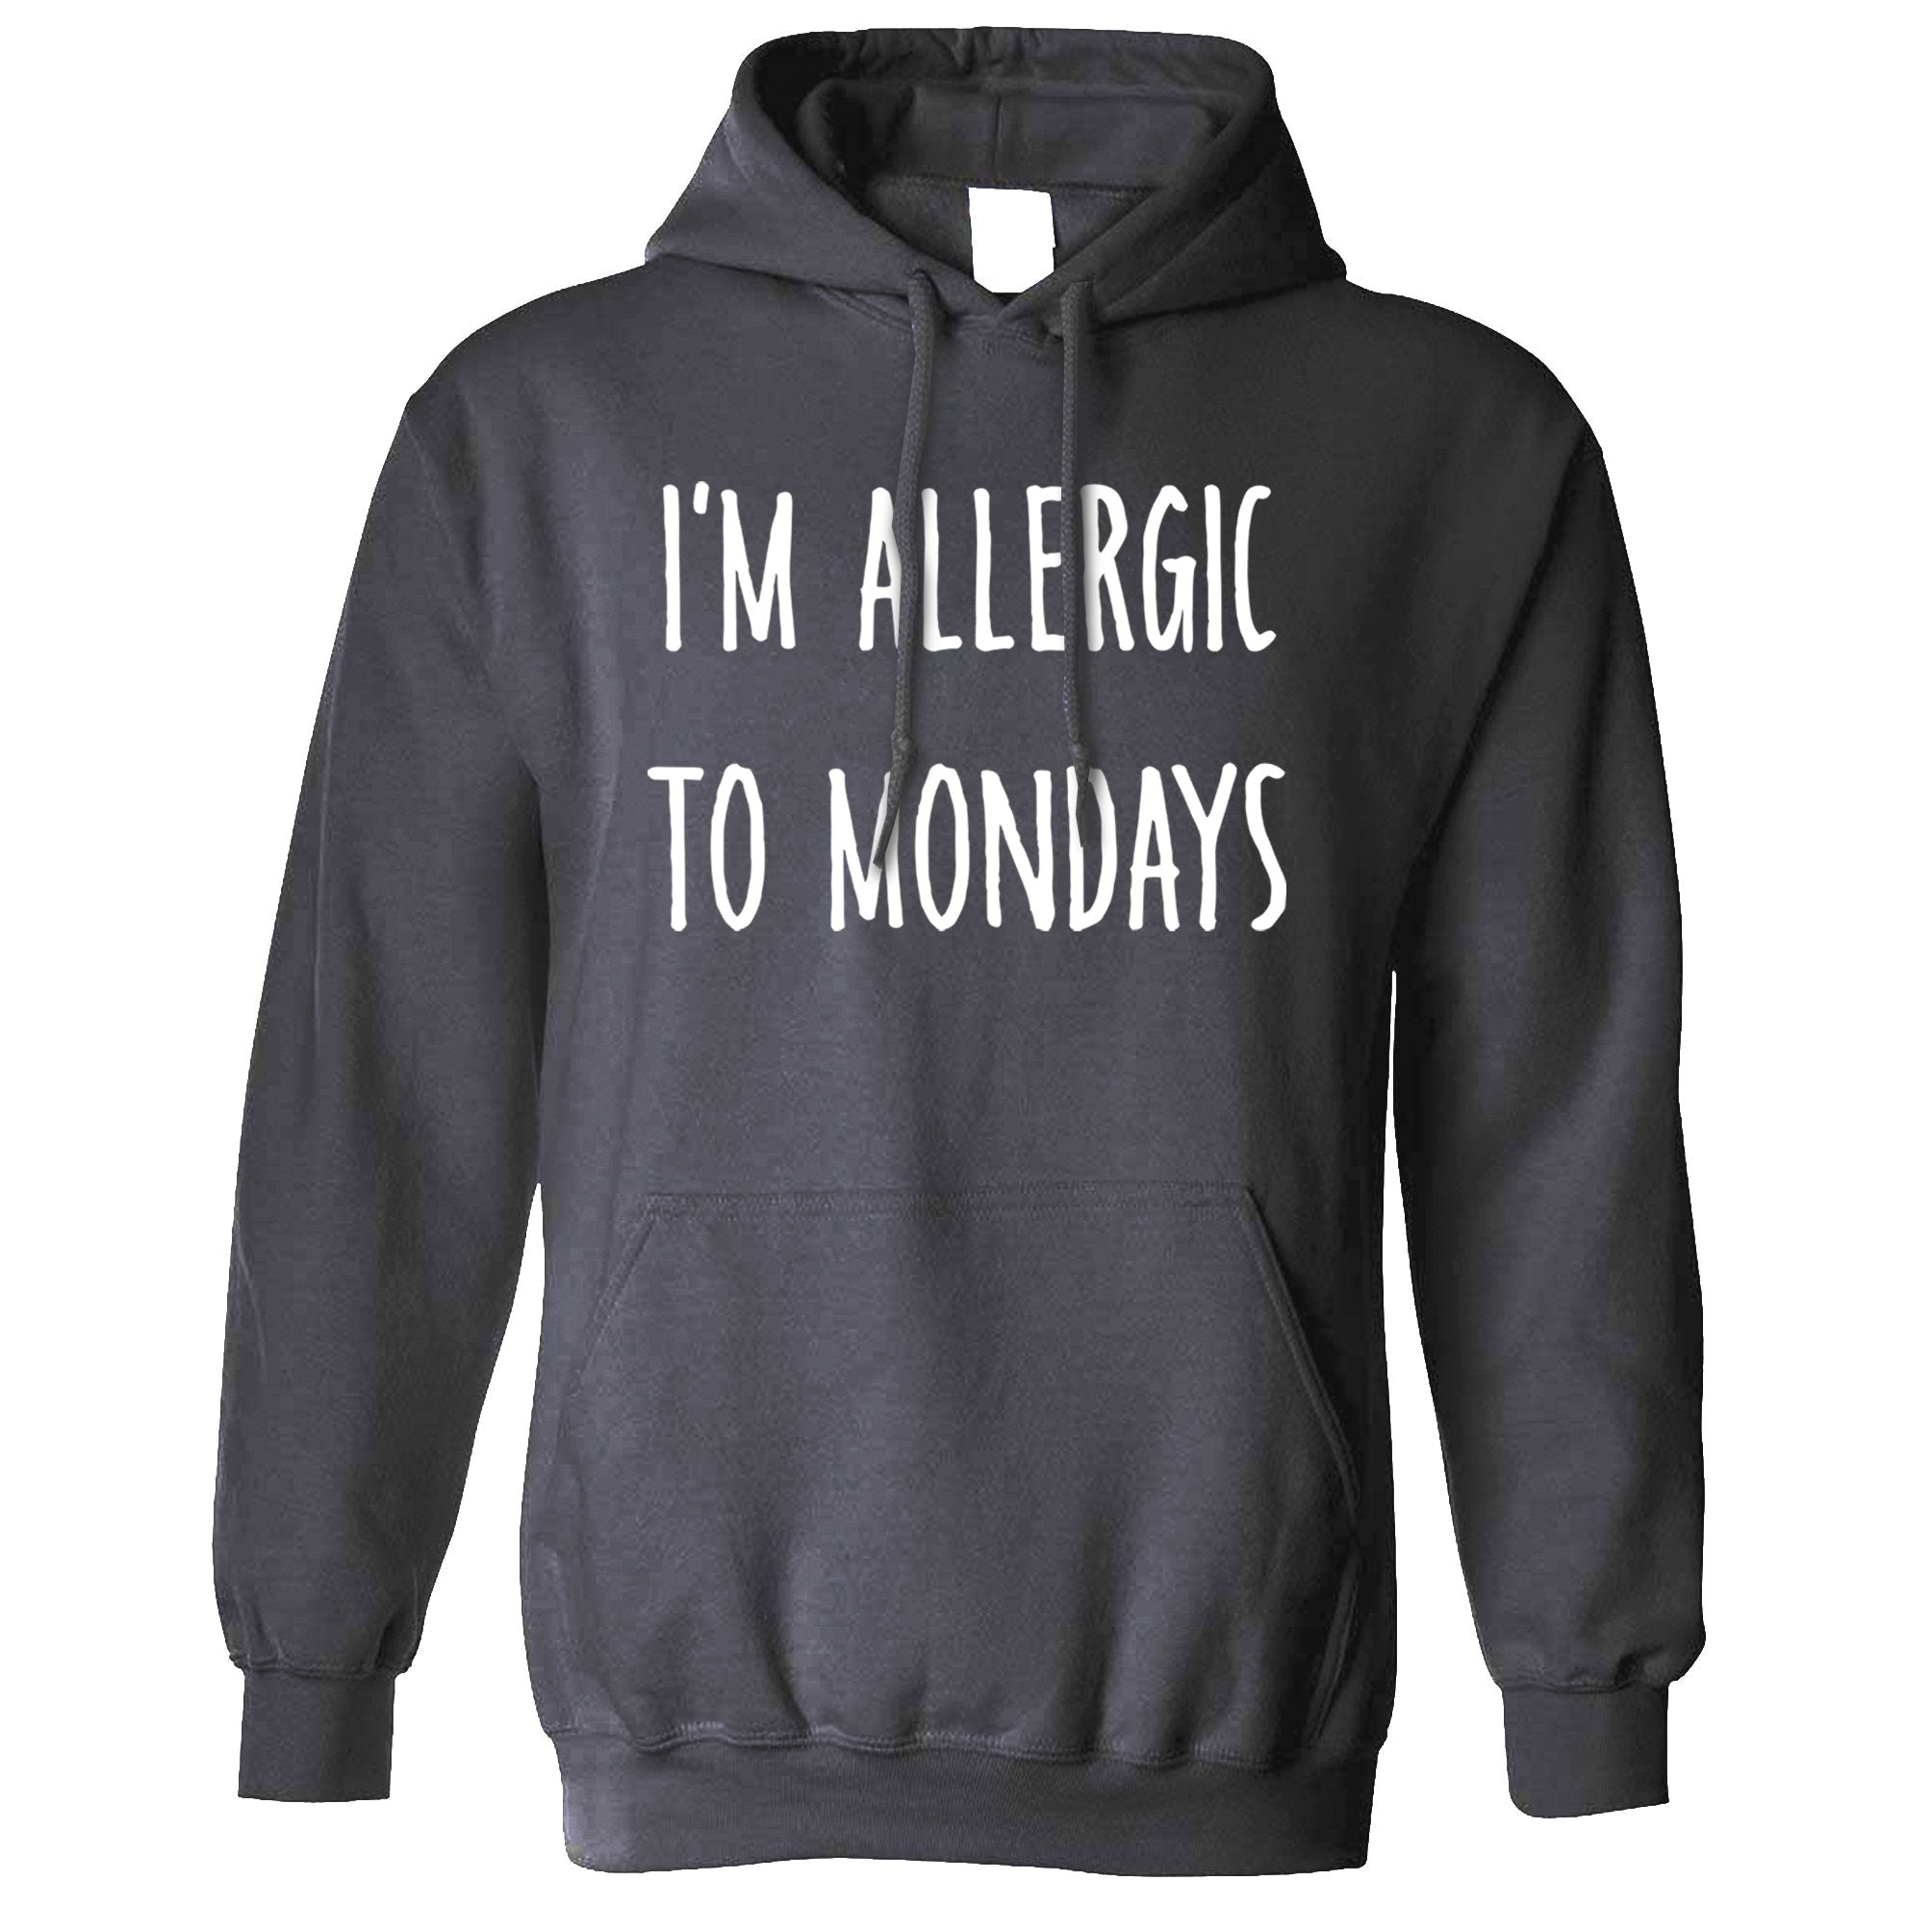 Novelty Hoodie I'm Allergic To Mondays Slogan Hooded Jumper